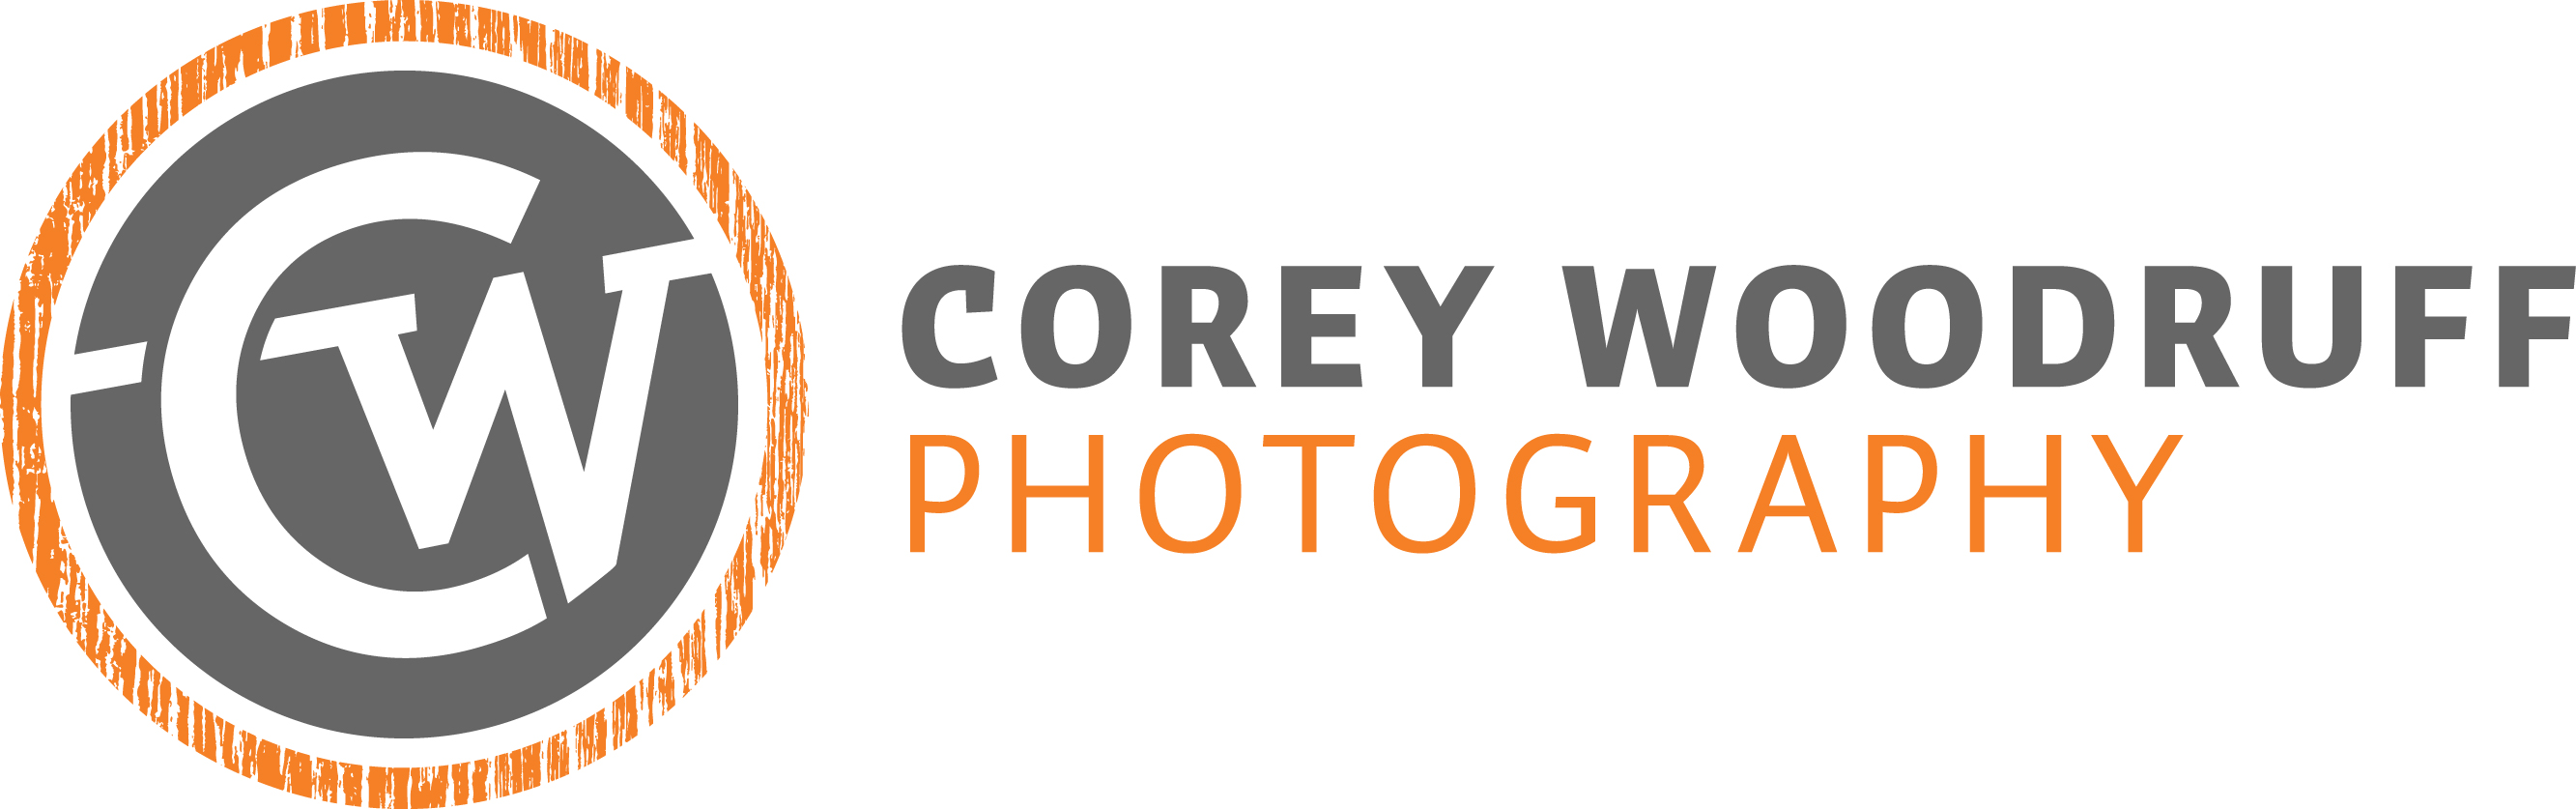 Corey Woodruff Photography